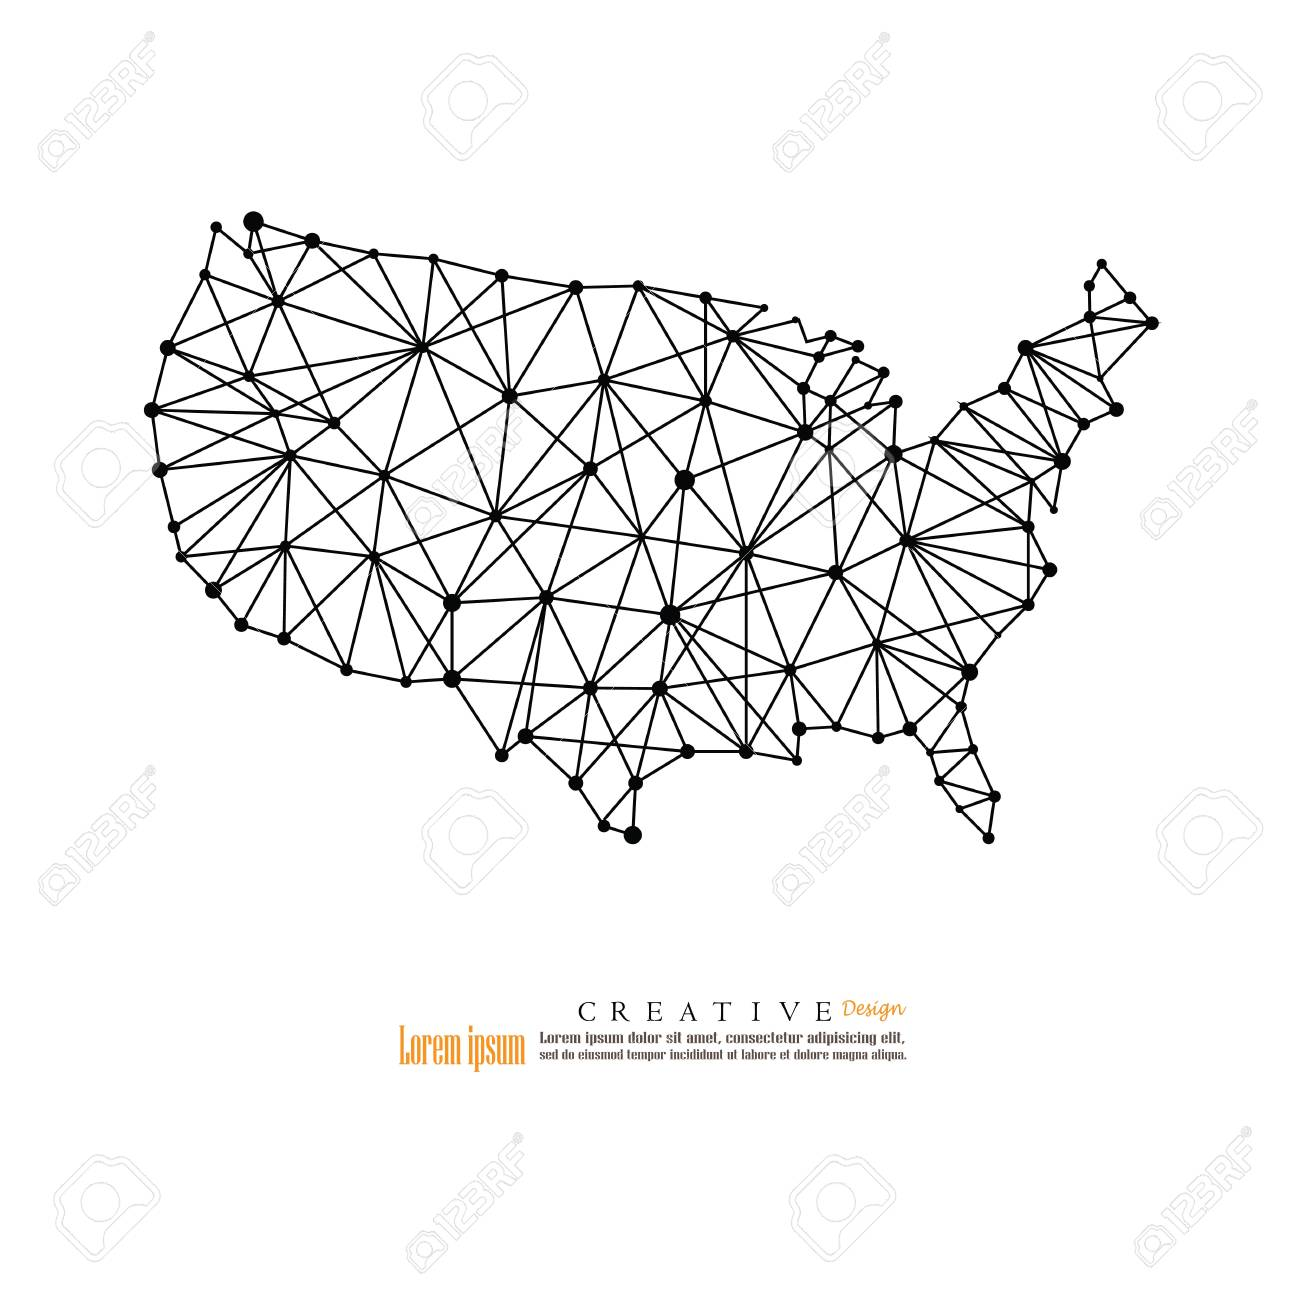 Outline map of The United States of America vector illustration.